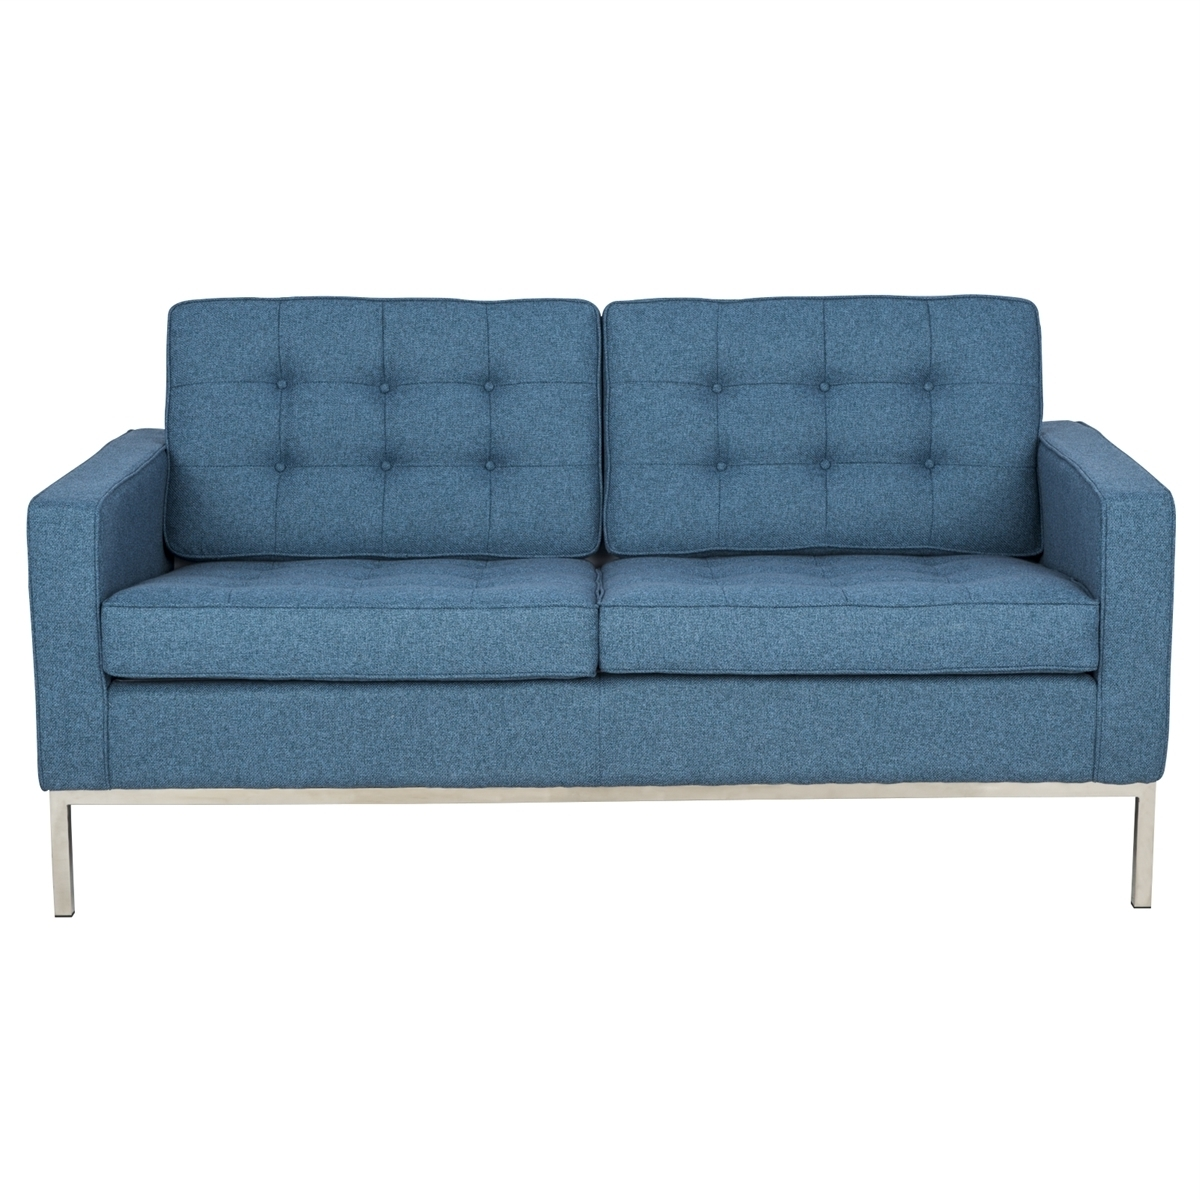 Well Known Florence Sofas And Loveseats Regarding Modern Florence Style Loveseat Sofa In Blue Tweed Cashmere Wool (View 9 of 15)